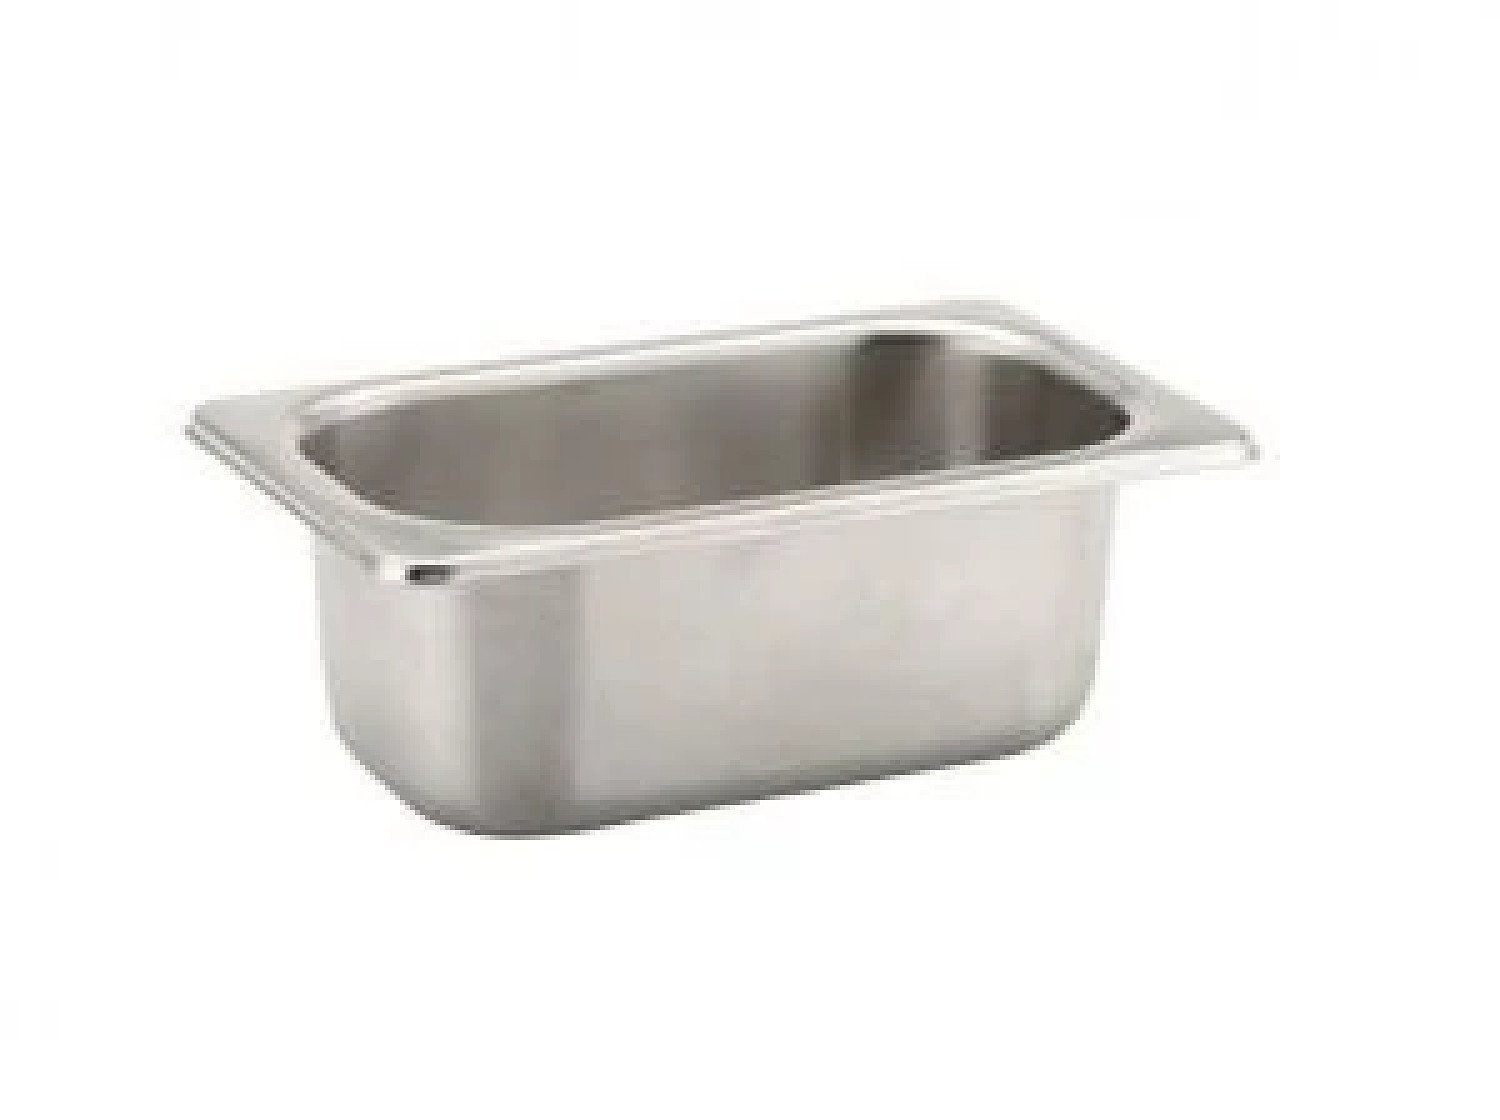 1 Litre S. Steel Gastronorm Container 1/9 100mm For Salads Vegetables Sauces £15.99 Free Postage